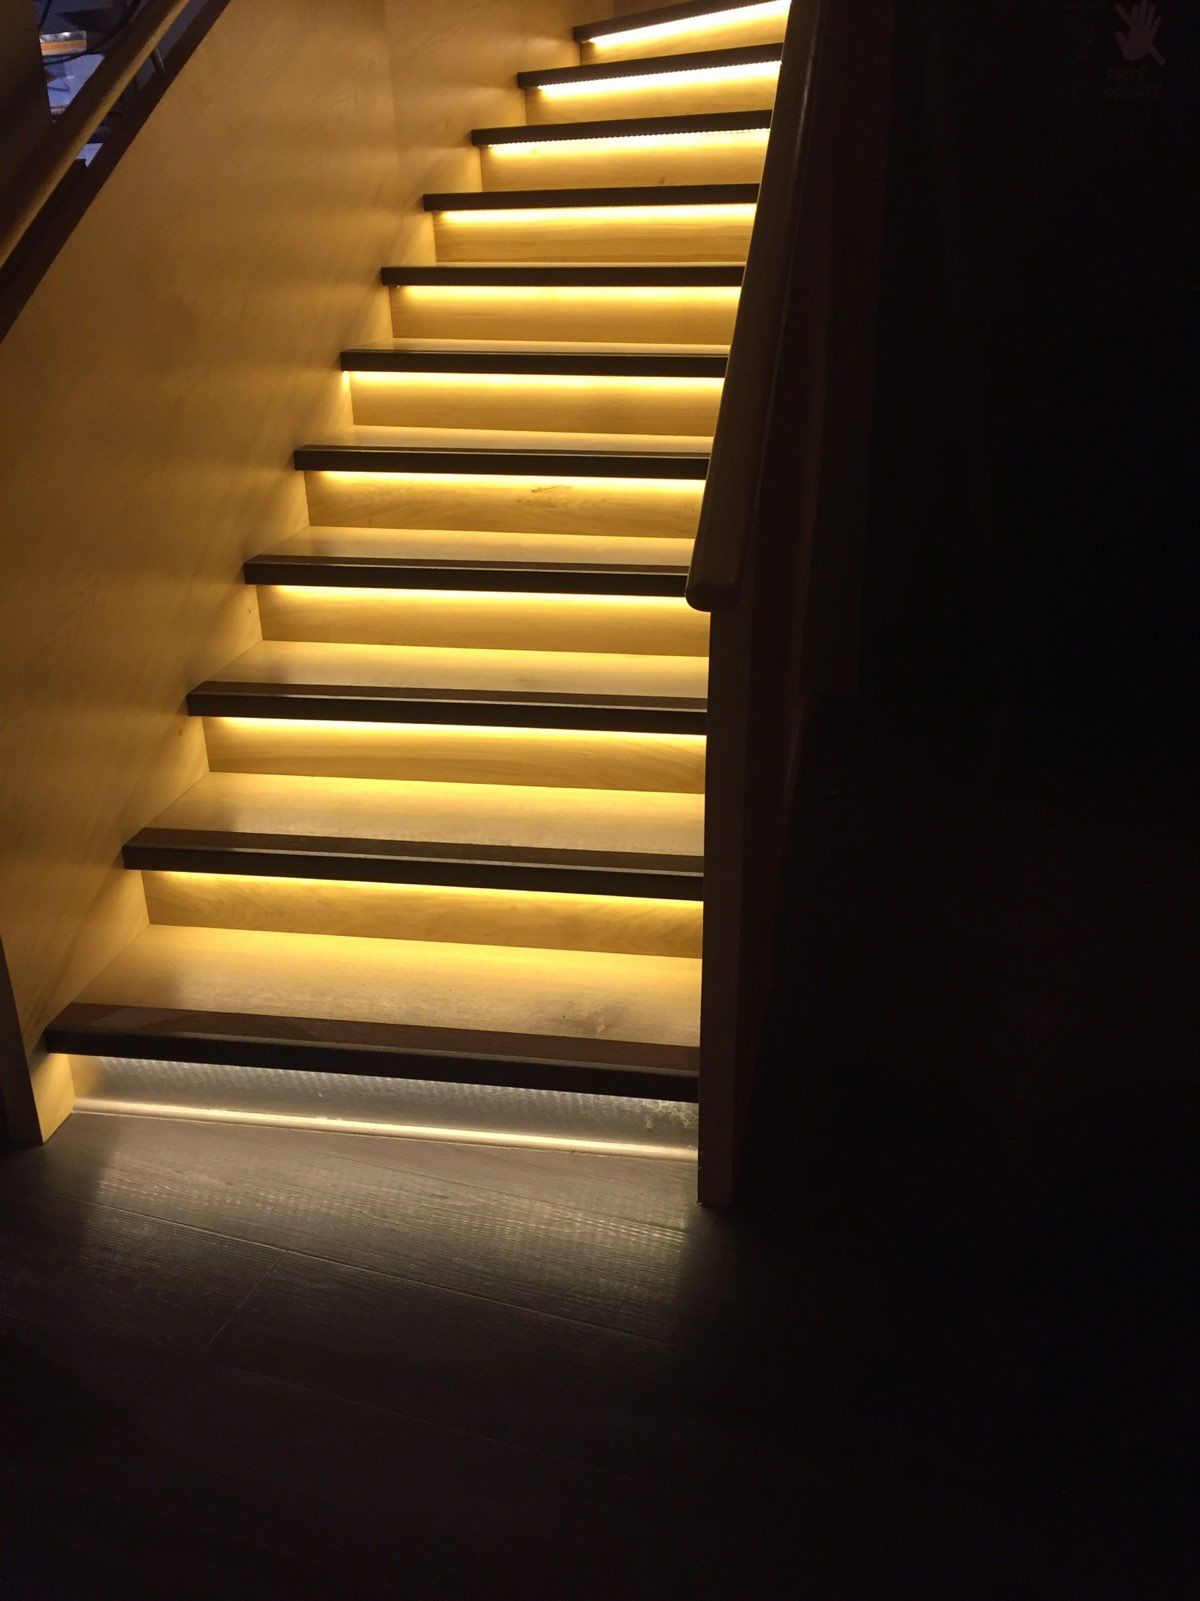 Ruban Eclairage Led éclairage D Escalier En Ruban Led Éclairage Au Led Stair